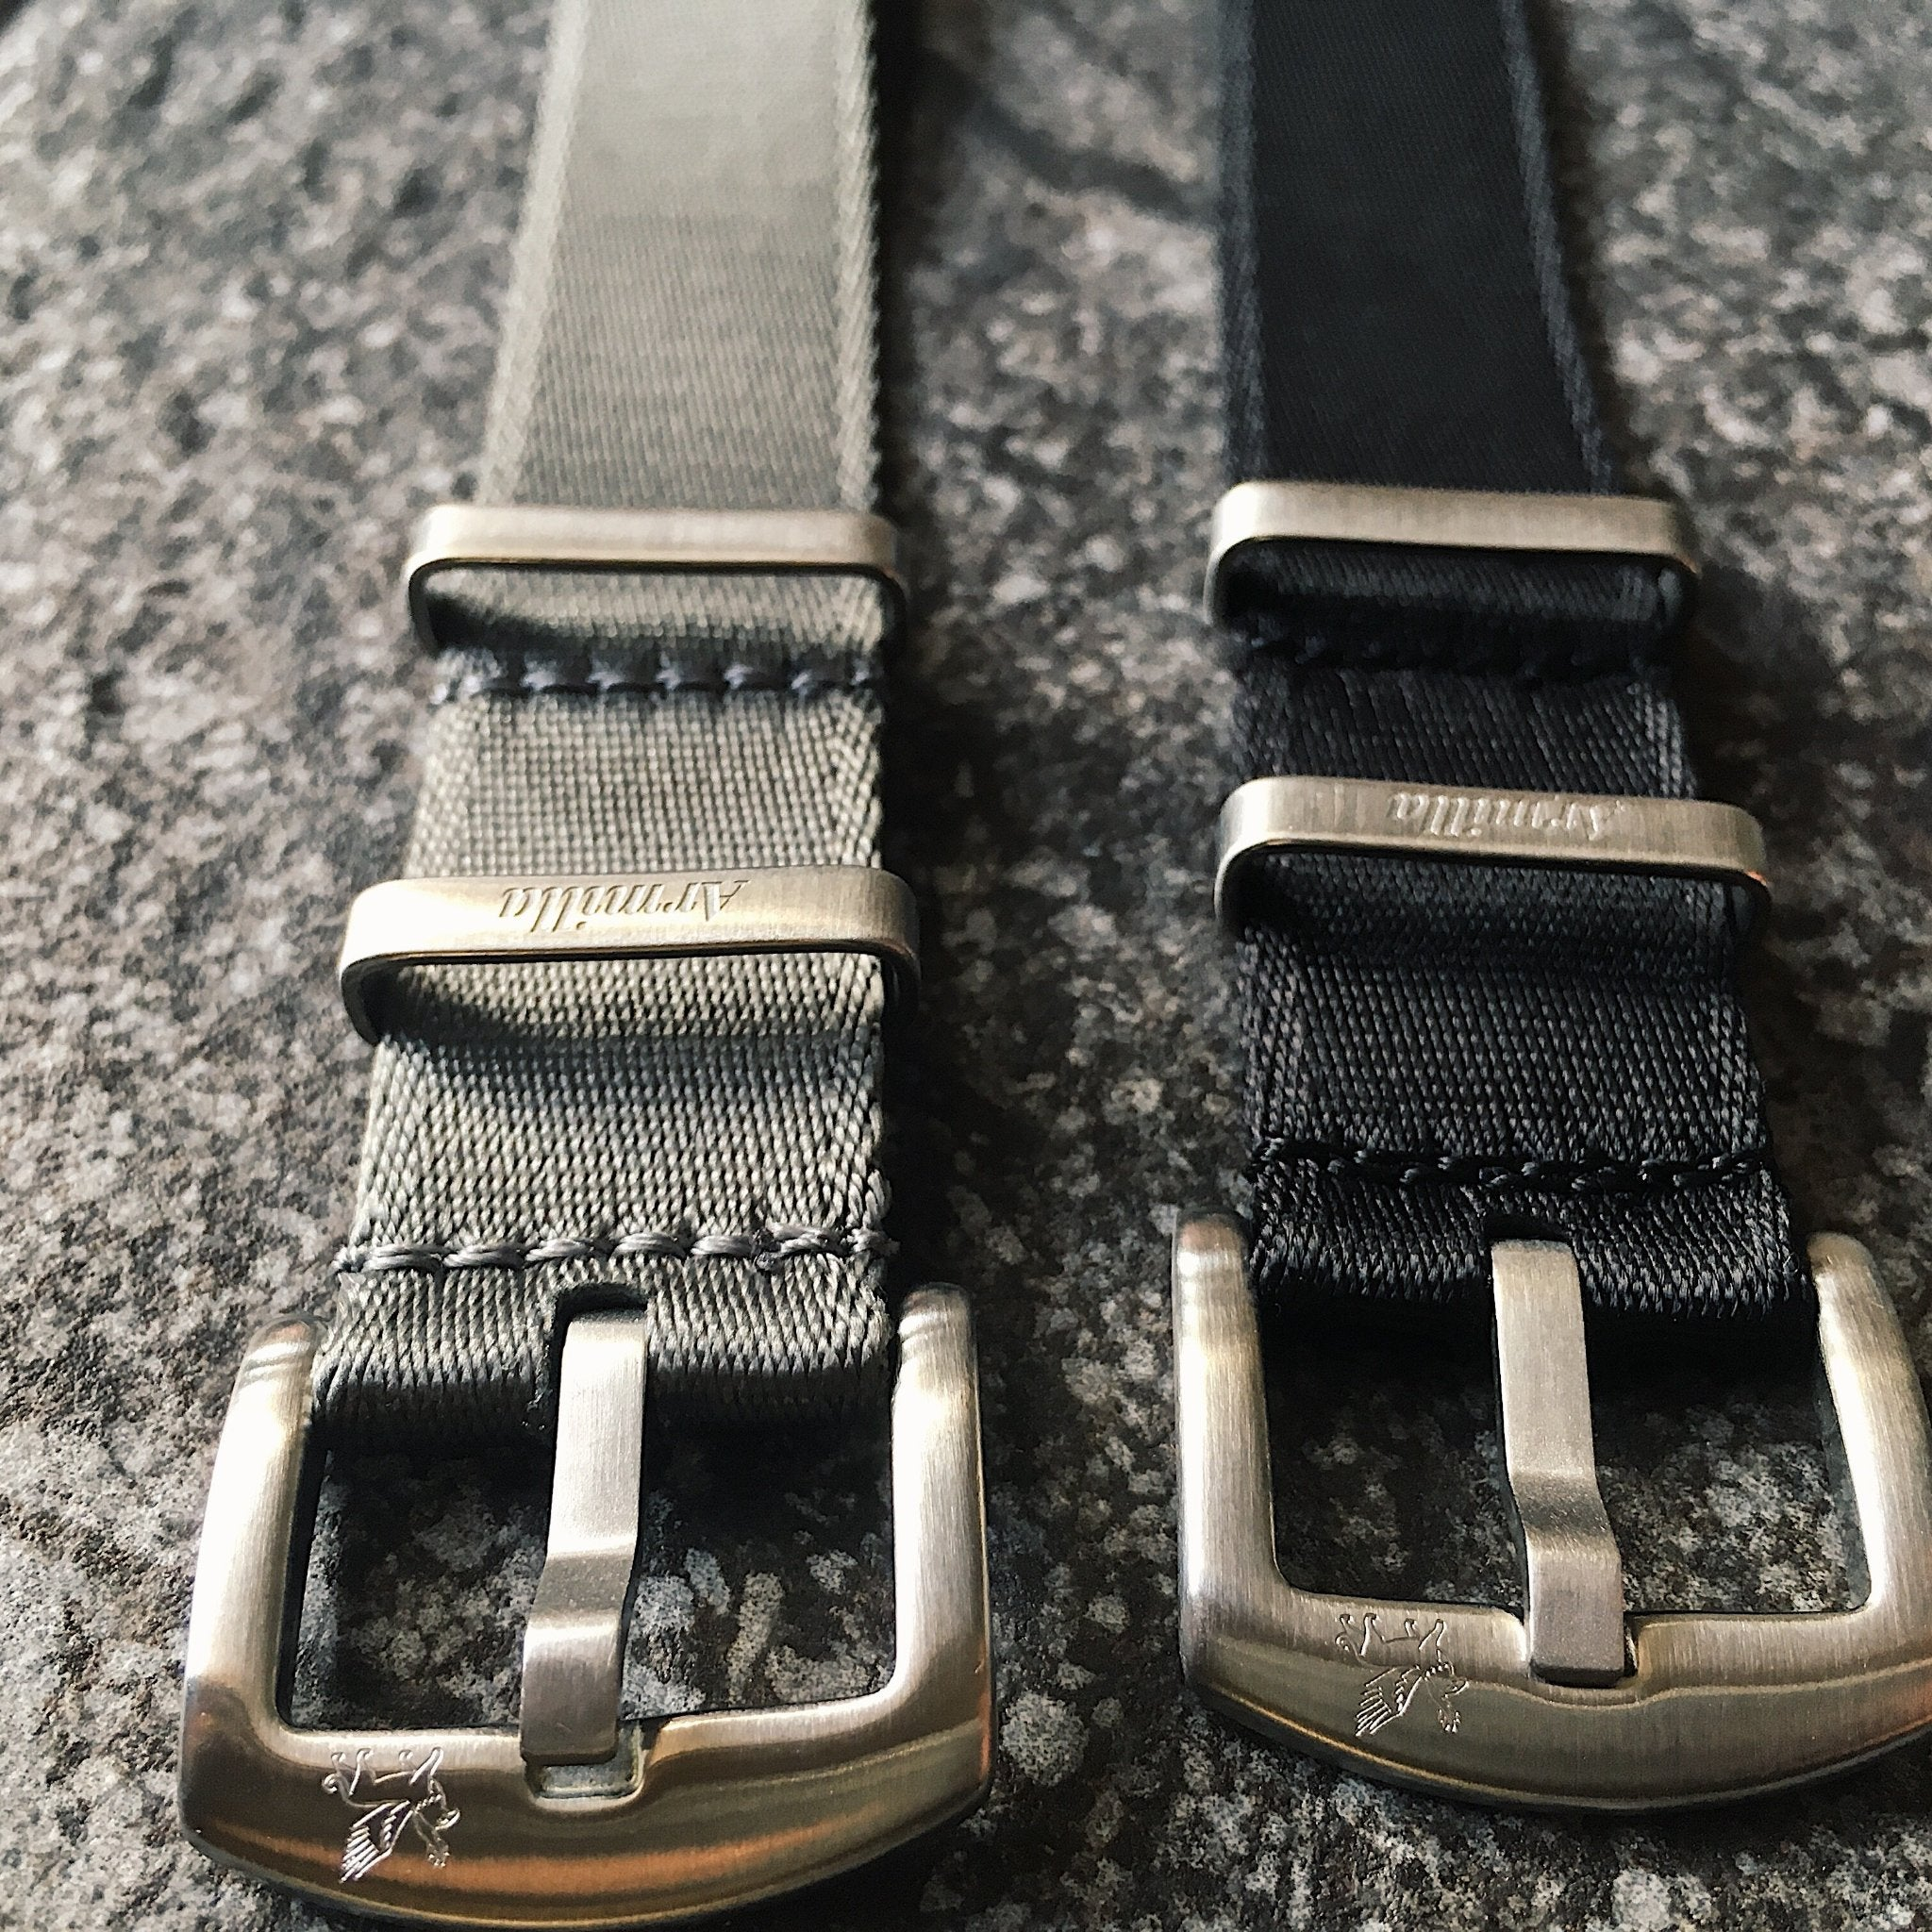 Slim Black and Grey Armilla NATO Watch Straps / Bands